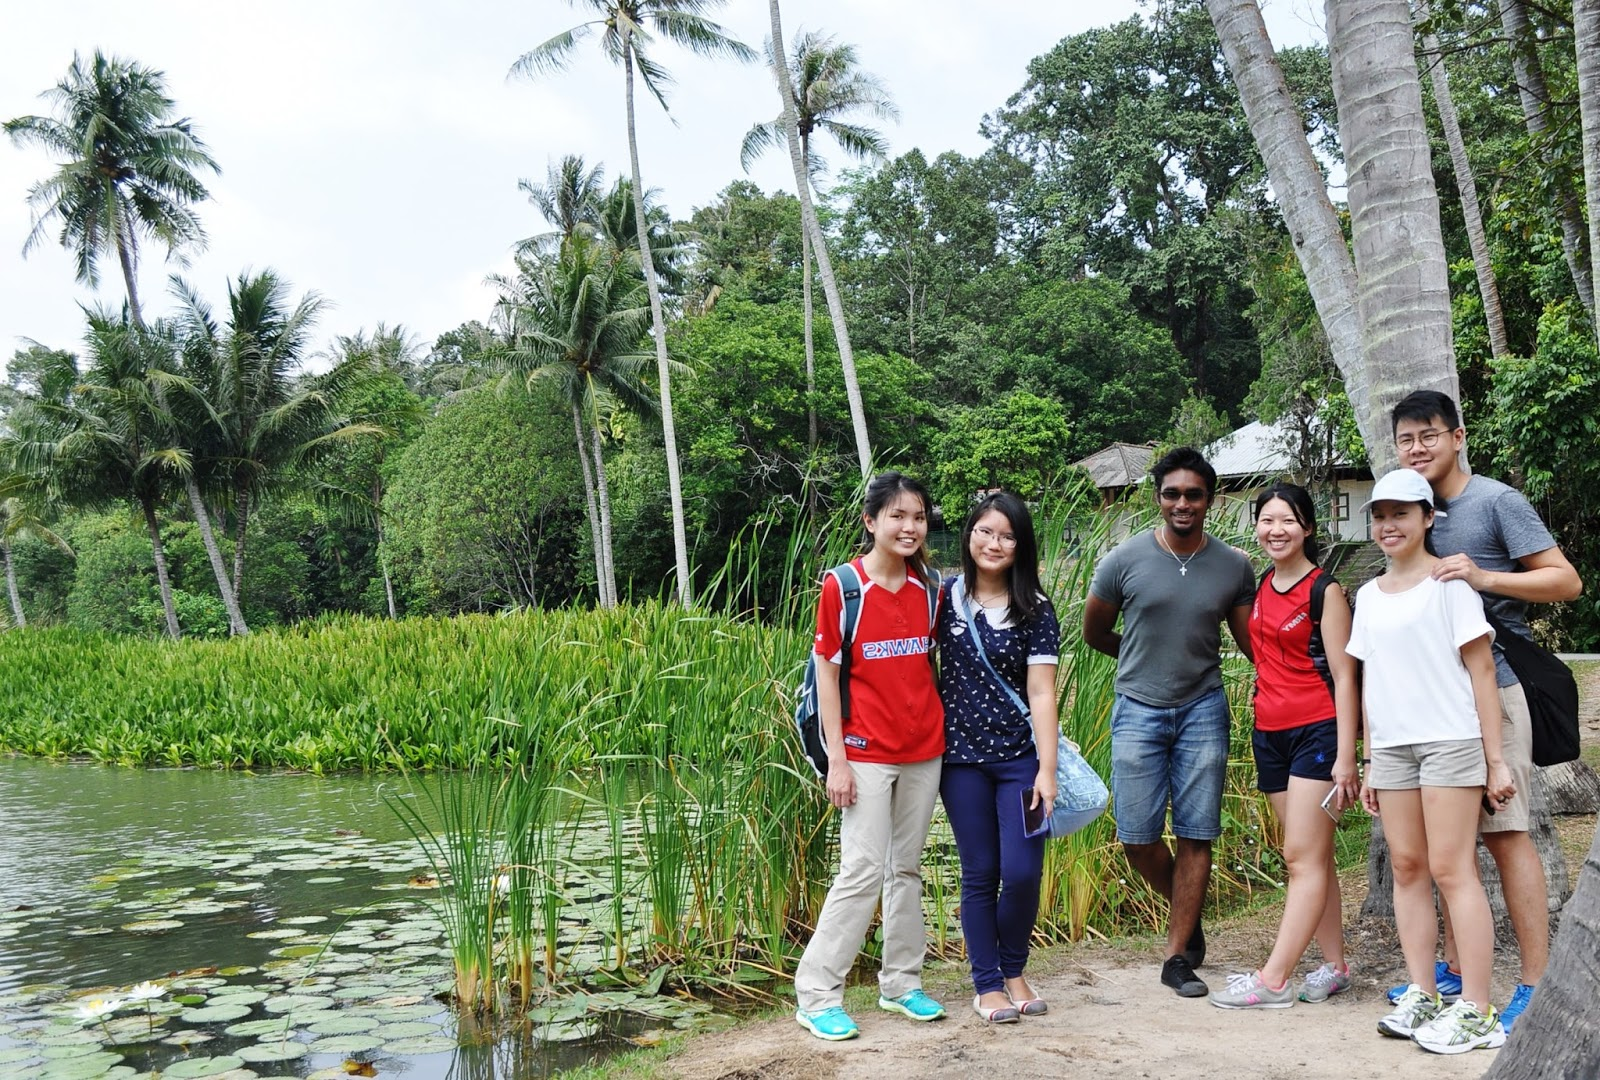 Love Gone Wild at Pulau Ubin!